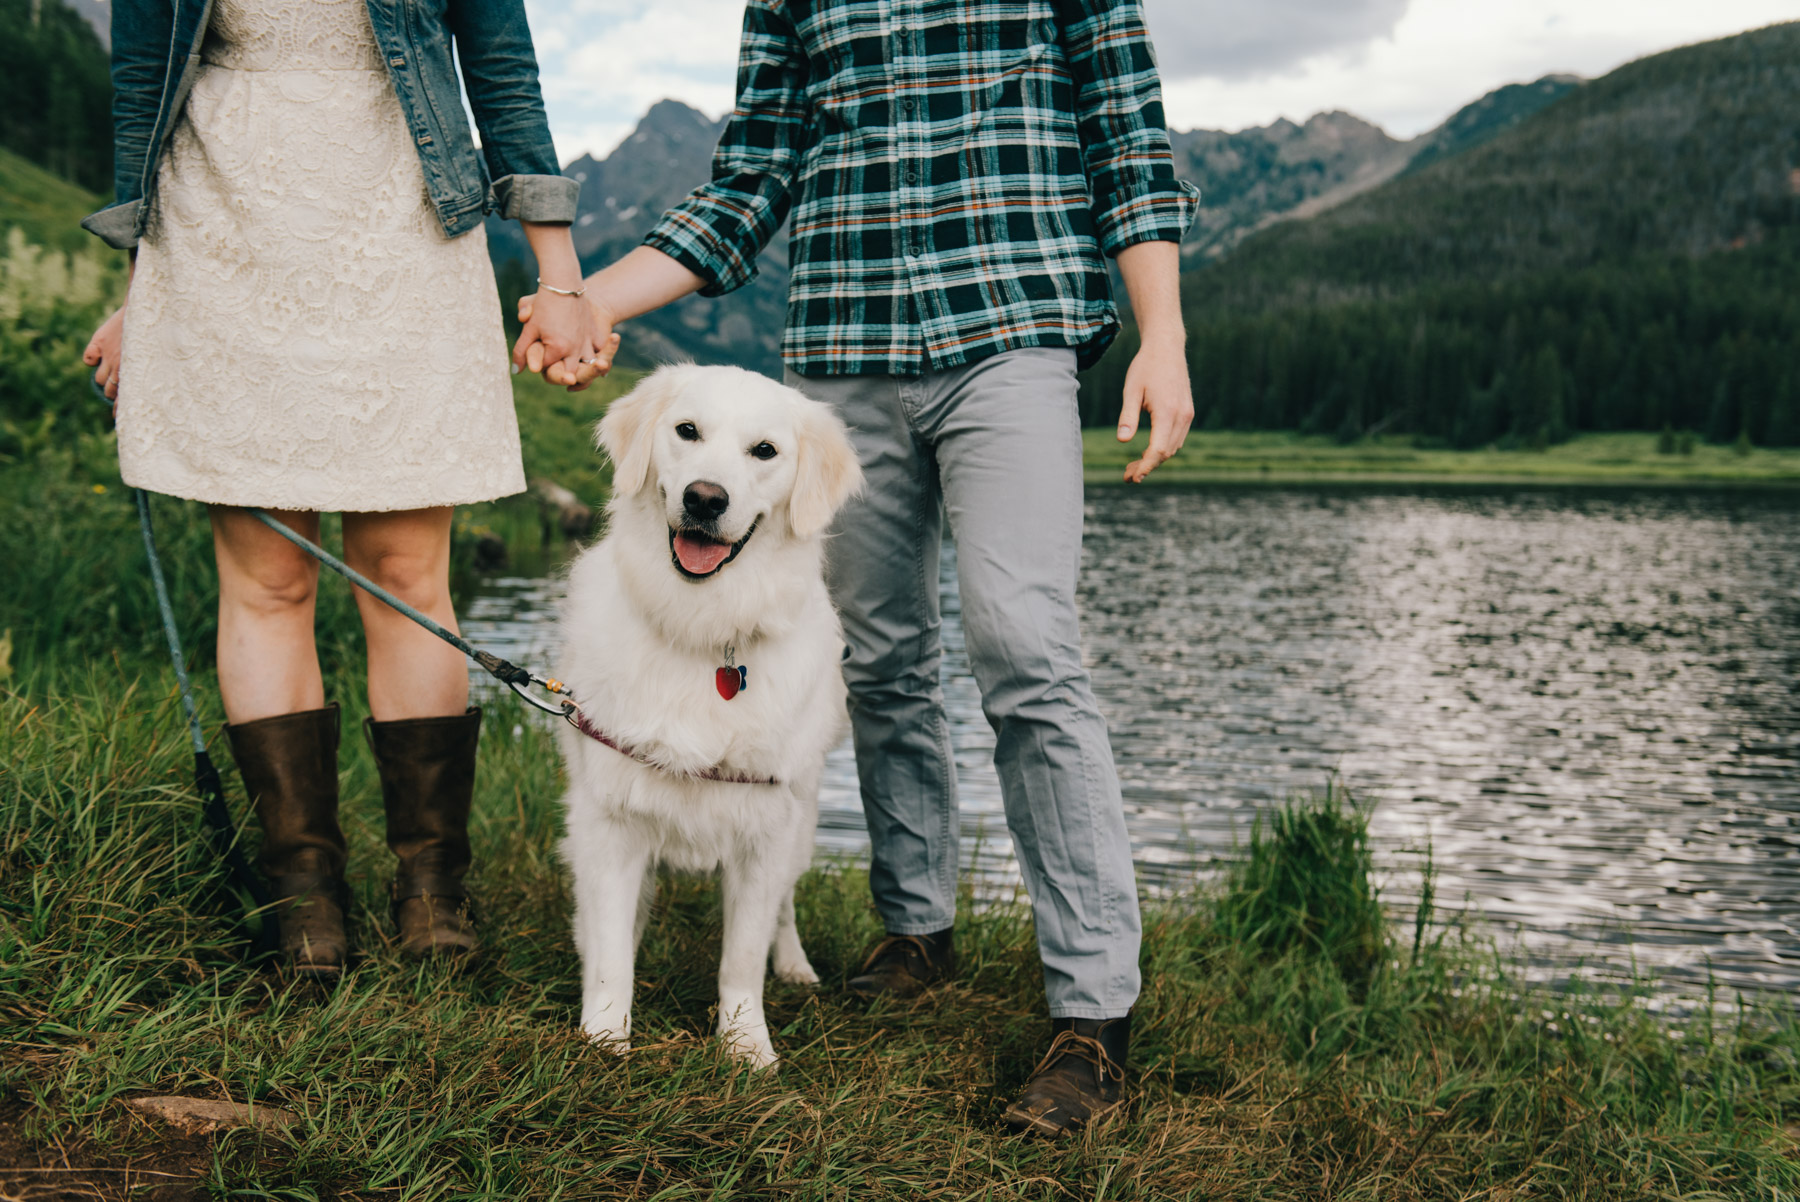 Erin and Clay with their adorable Golden Retriever. She was so happy to hang out with her mom and dad for their Piney River Ranch engagement session in Vail, Colorado. They loved hiking around, and even dipped their feet in the lake for me!